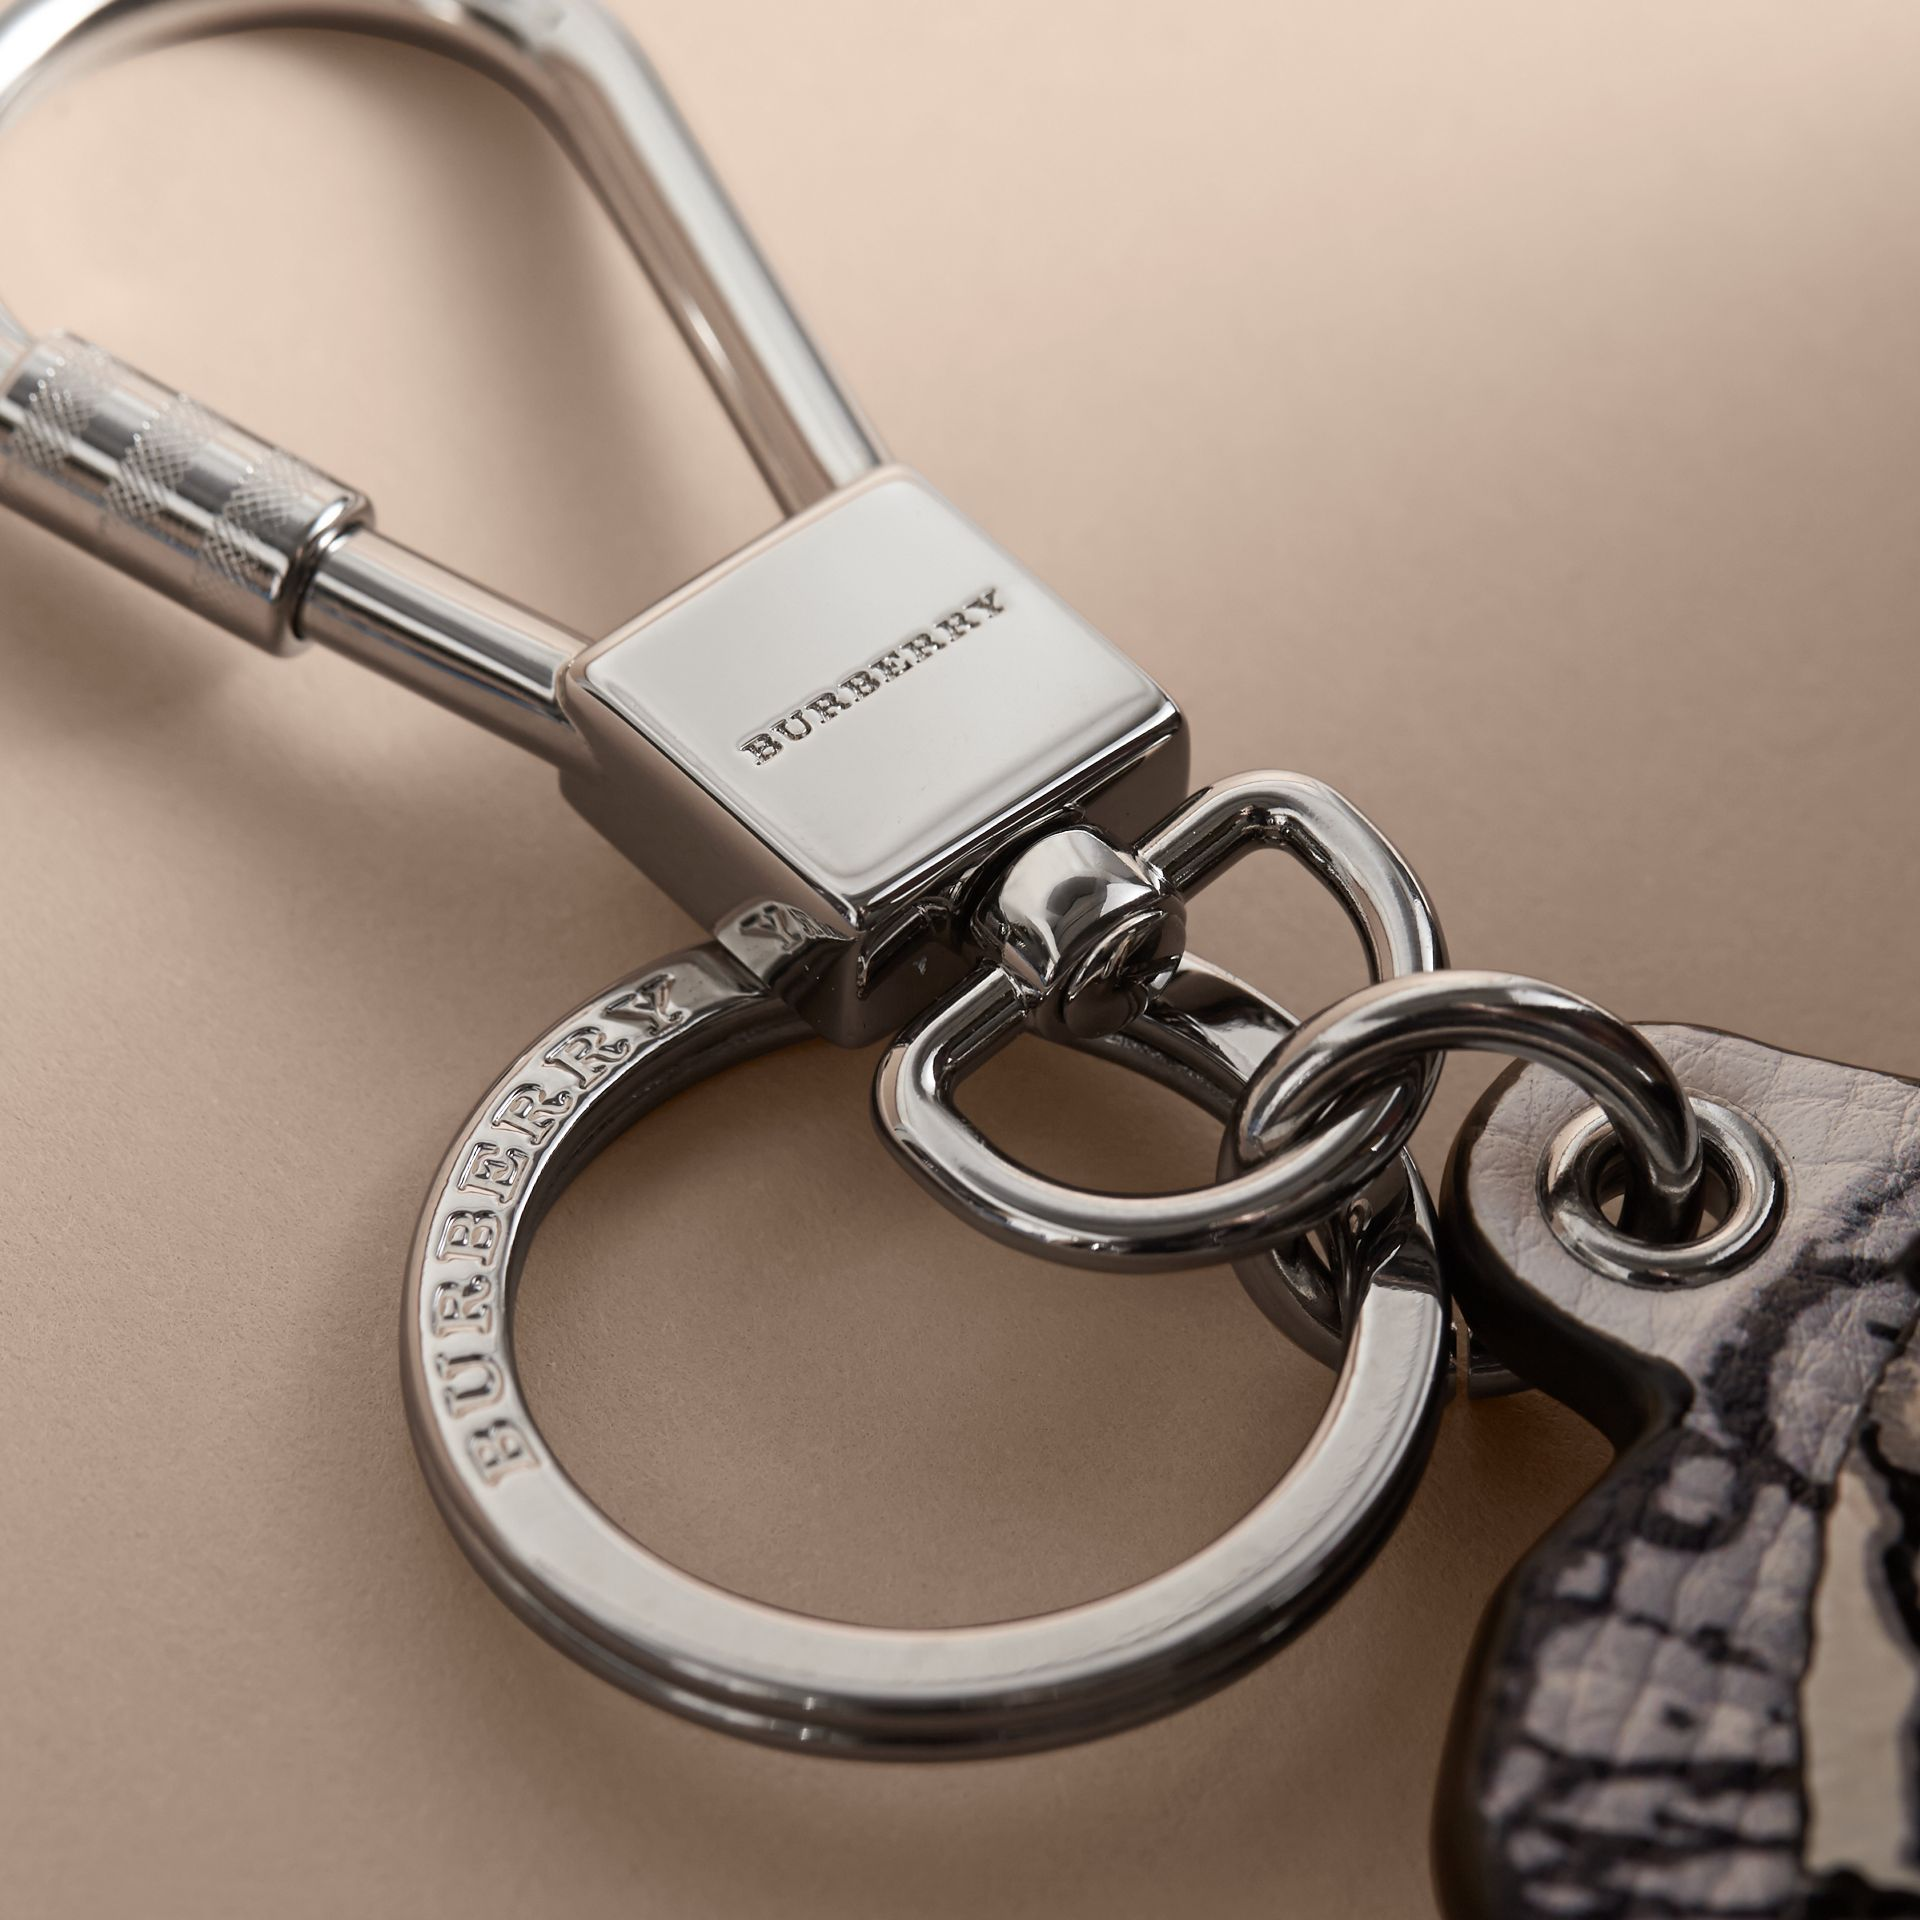 Pallas Helmet Motif Leather Key Ring in Black/white - Men | Burberry - gallery image 2